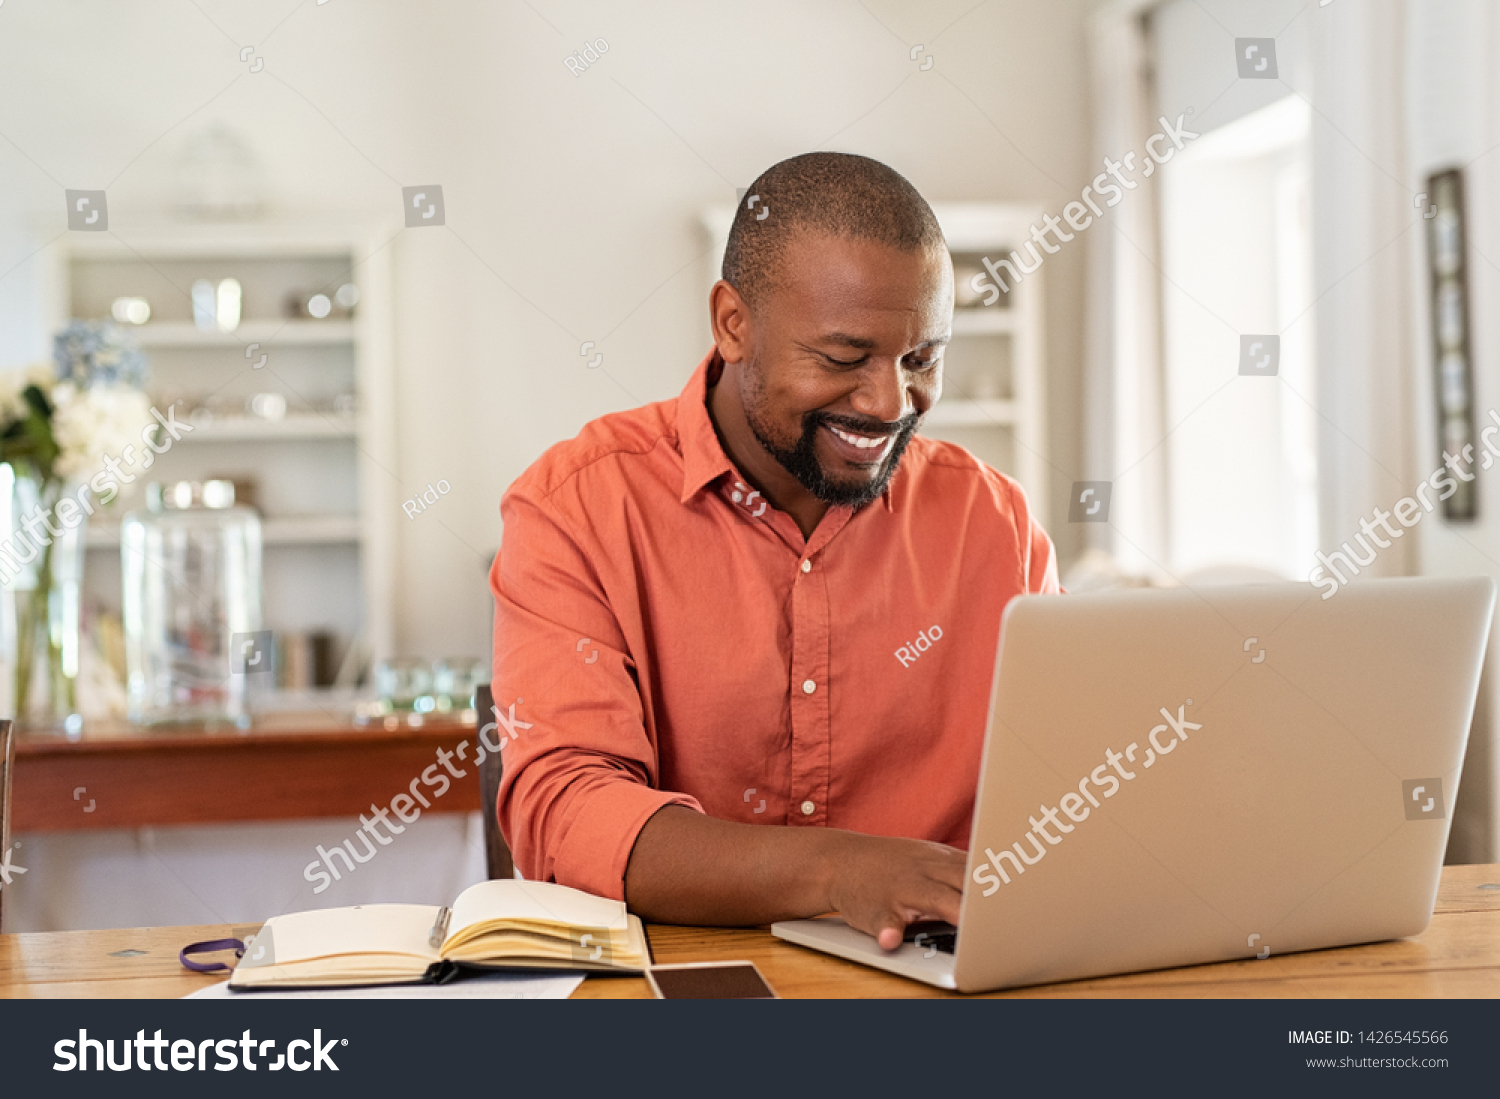 Smiling black man using laptop at home in living room. Happy mature businessman send email and working at home. African american freelancer typing on computer with paperworks and documents on table. #1426545566